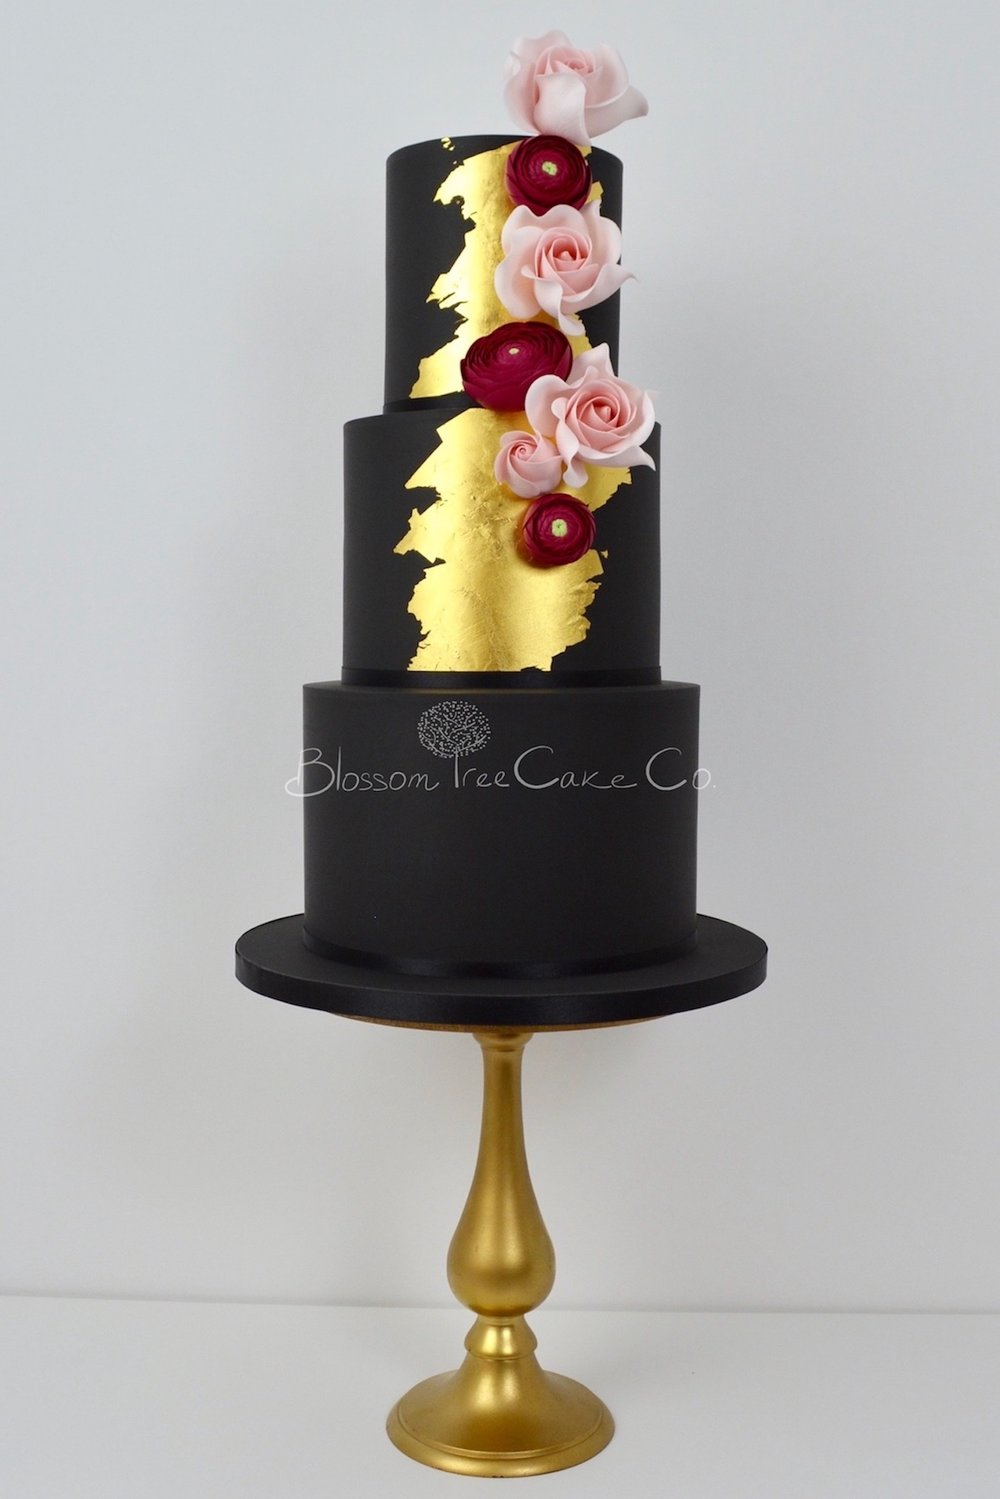 Black and Gold wedding cake by Blossom Tree Cake Company Harrogate North Yorkshire